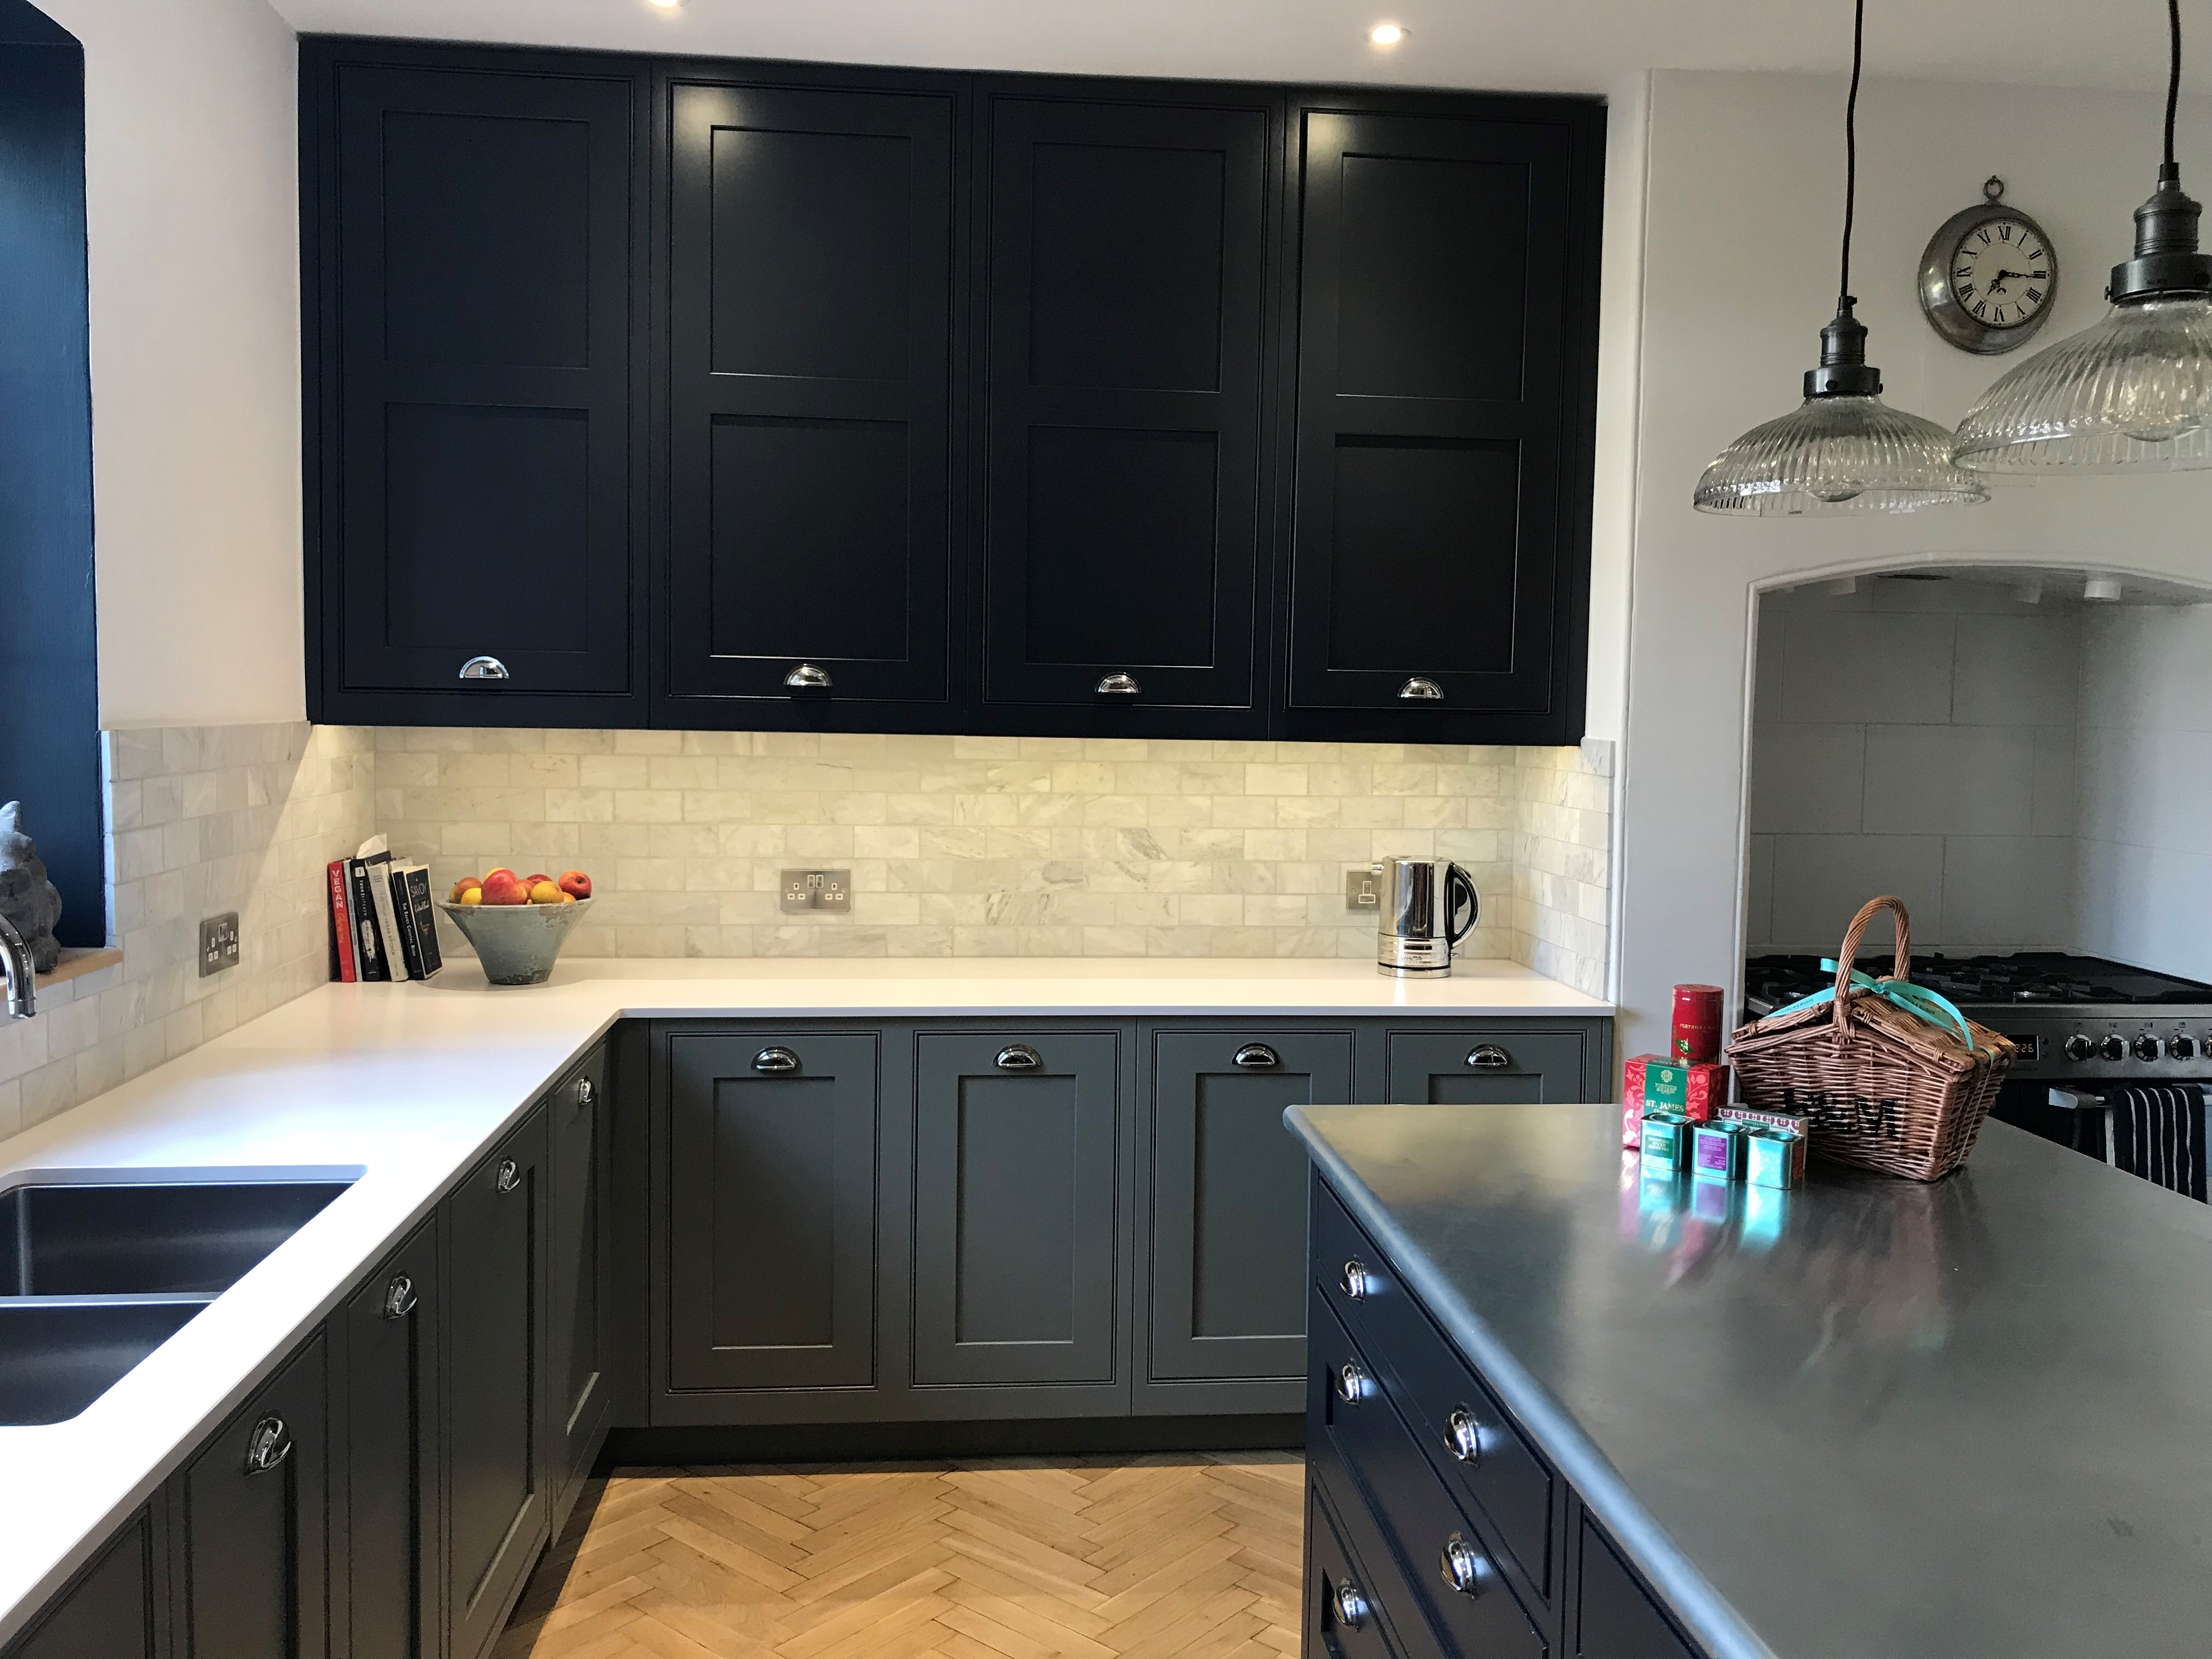 Metal Zinc Kitchen Worktops Made At UKAA